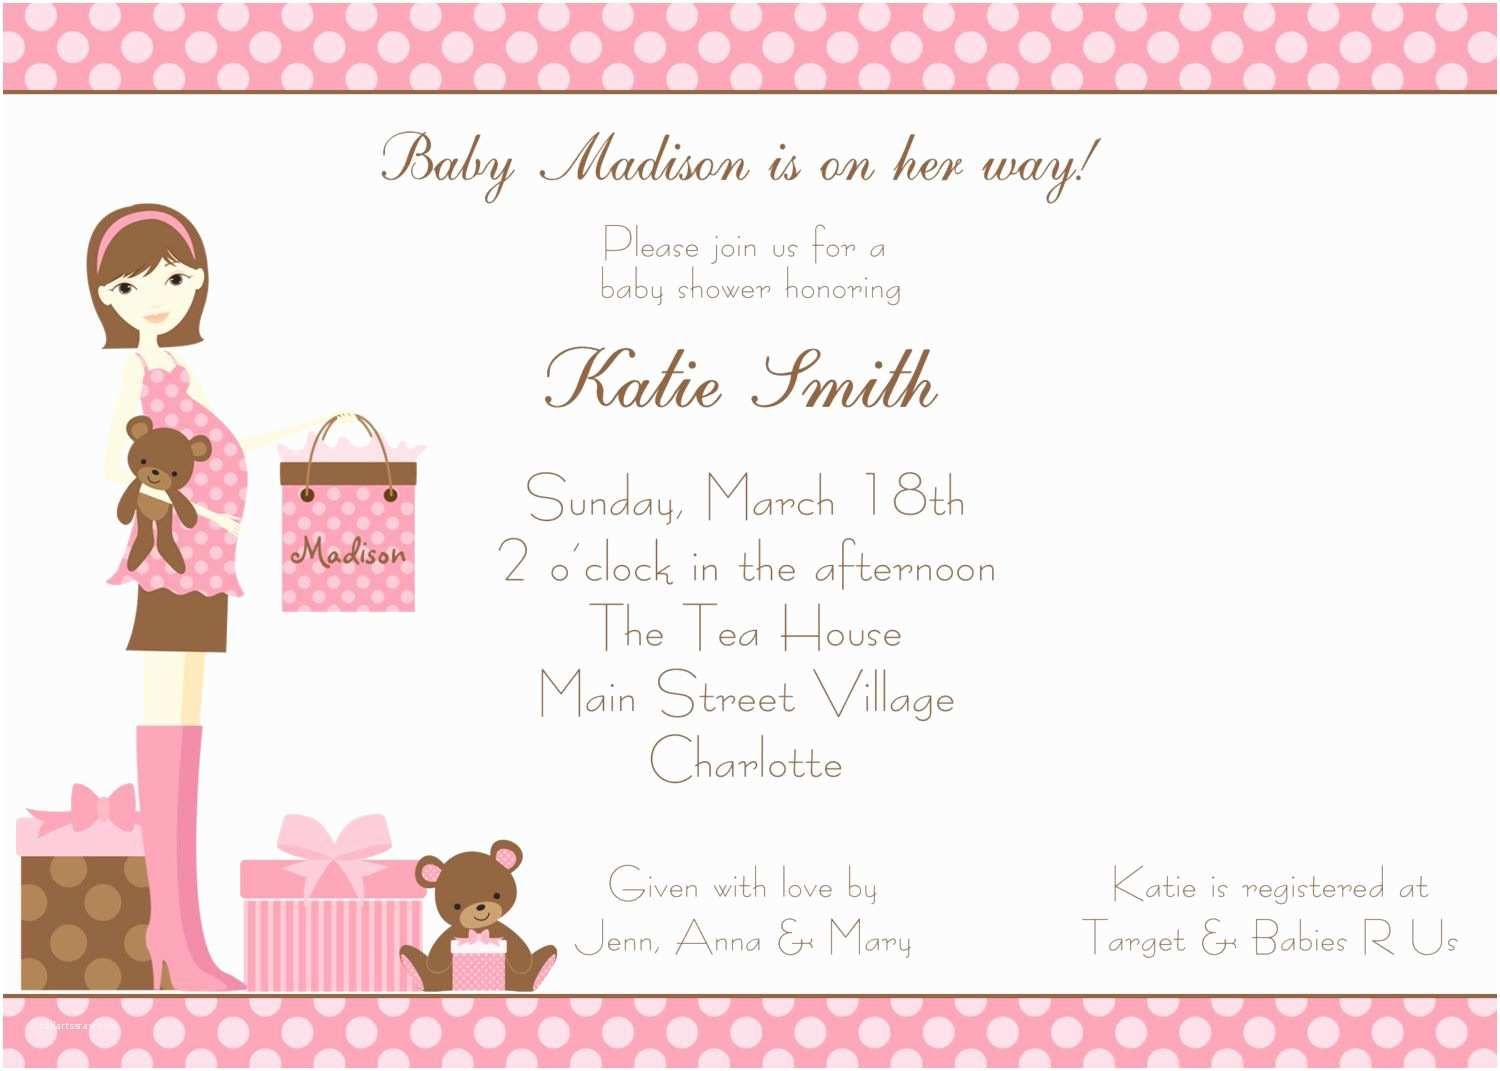 Target Baby Shower Invitations Baby Shower Invitation Baby Girl Shower Invitations